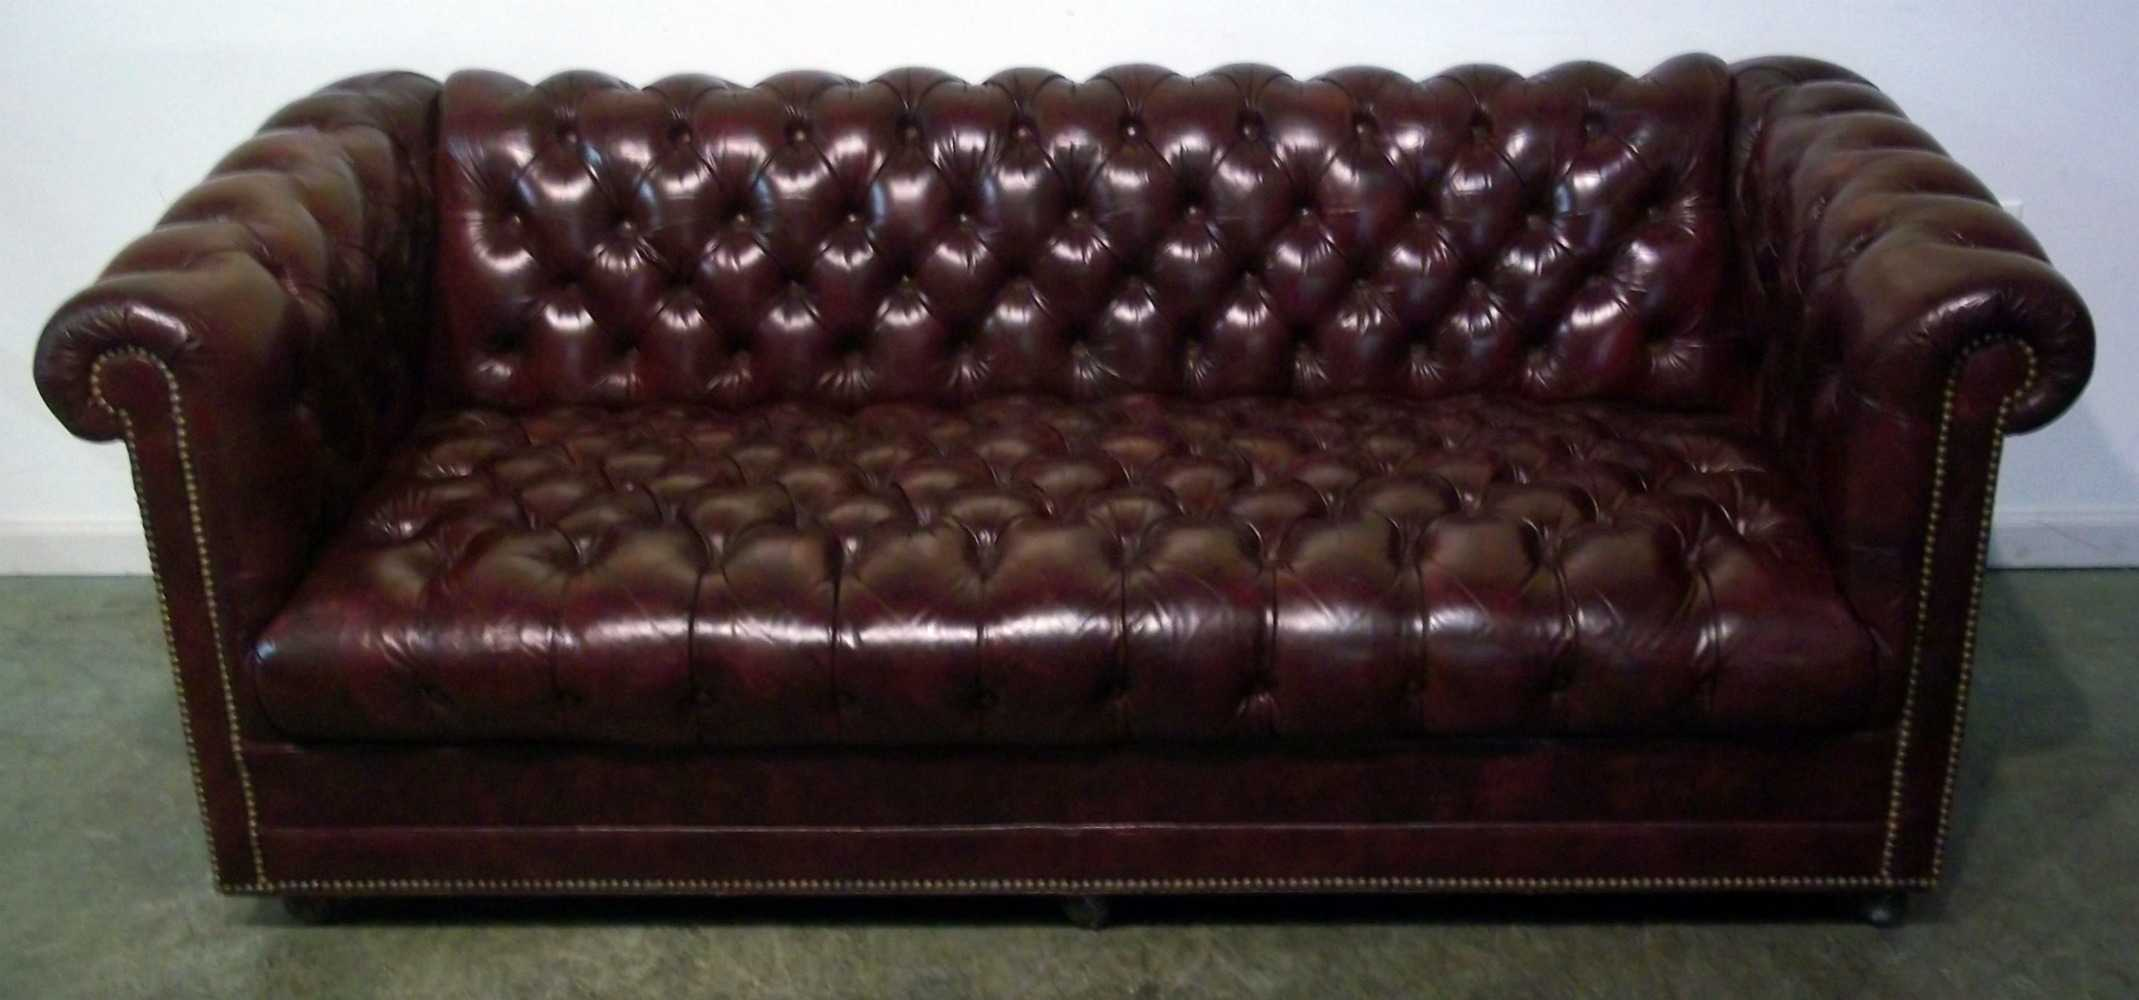 furniture rug chic ethan allen slipcovers for seat accessories